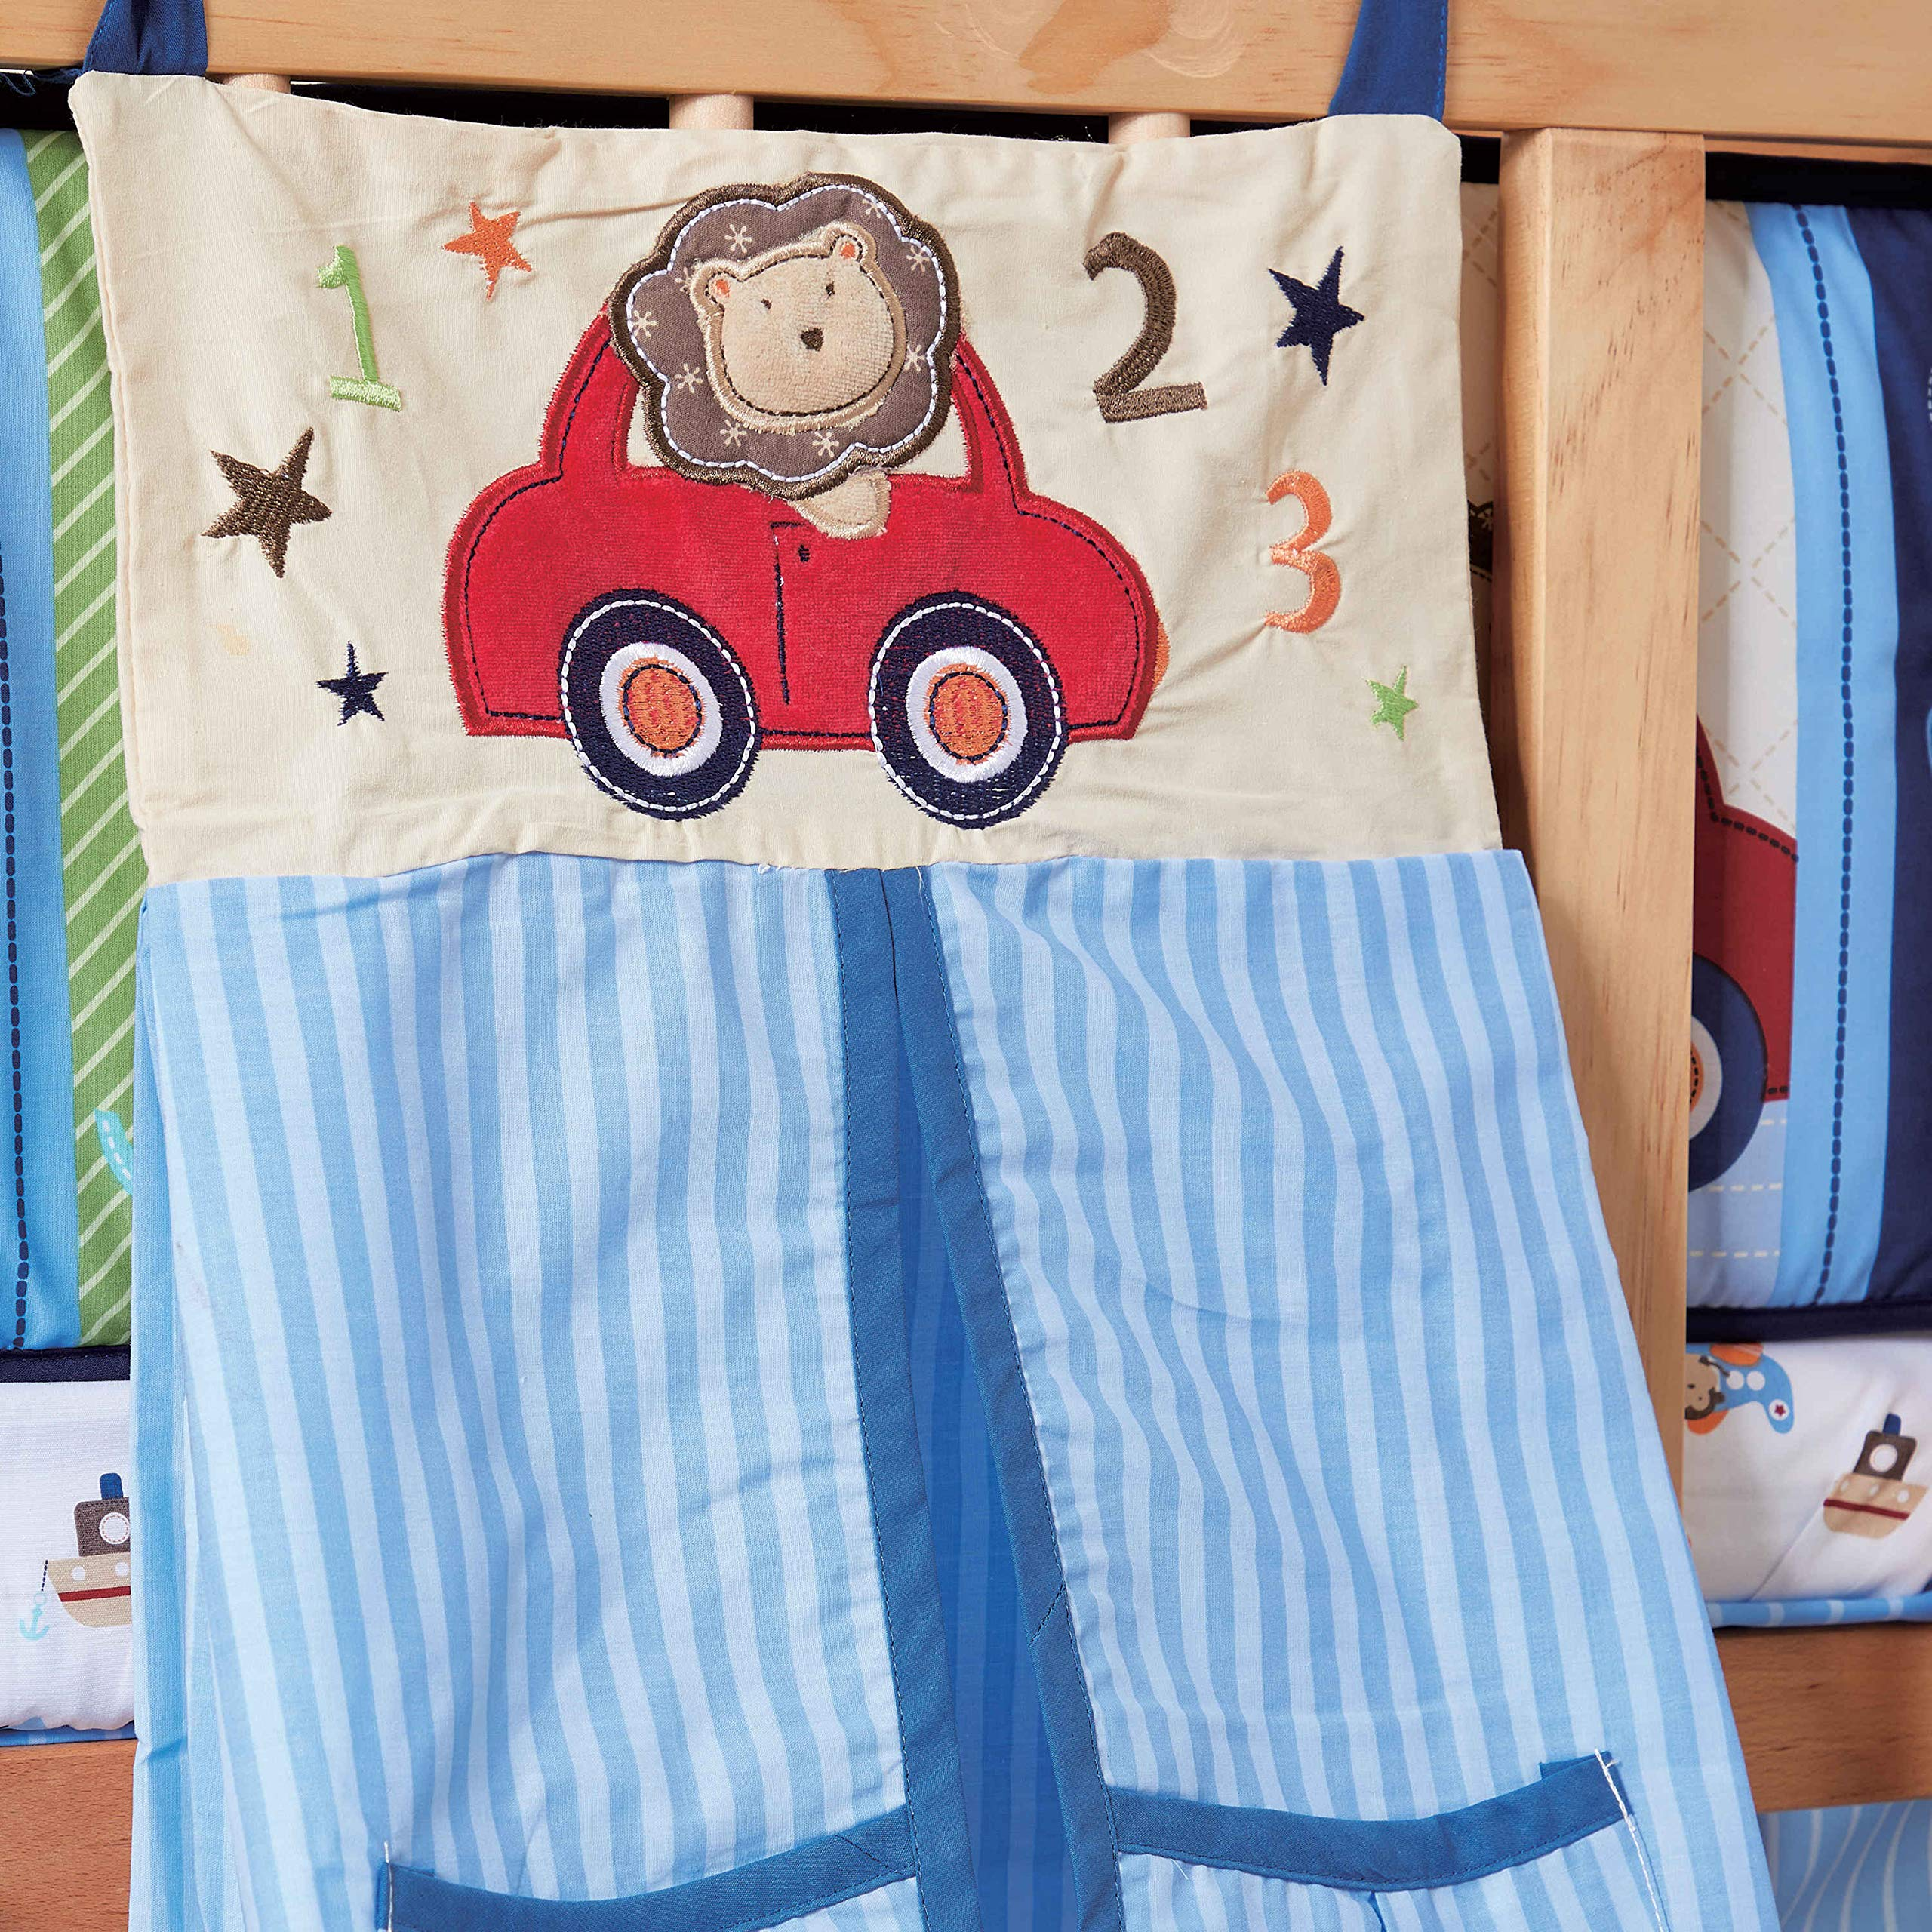 Wowelife Baby Crib Bedding Set 9 Piece Blue Travel Car and Airplane Crib Sets for Boys and Girls with Bumpers and Diaper Stacker(Little Pilot-9 Piece)